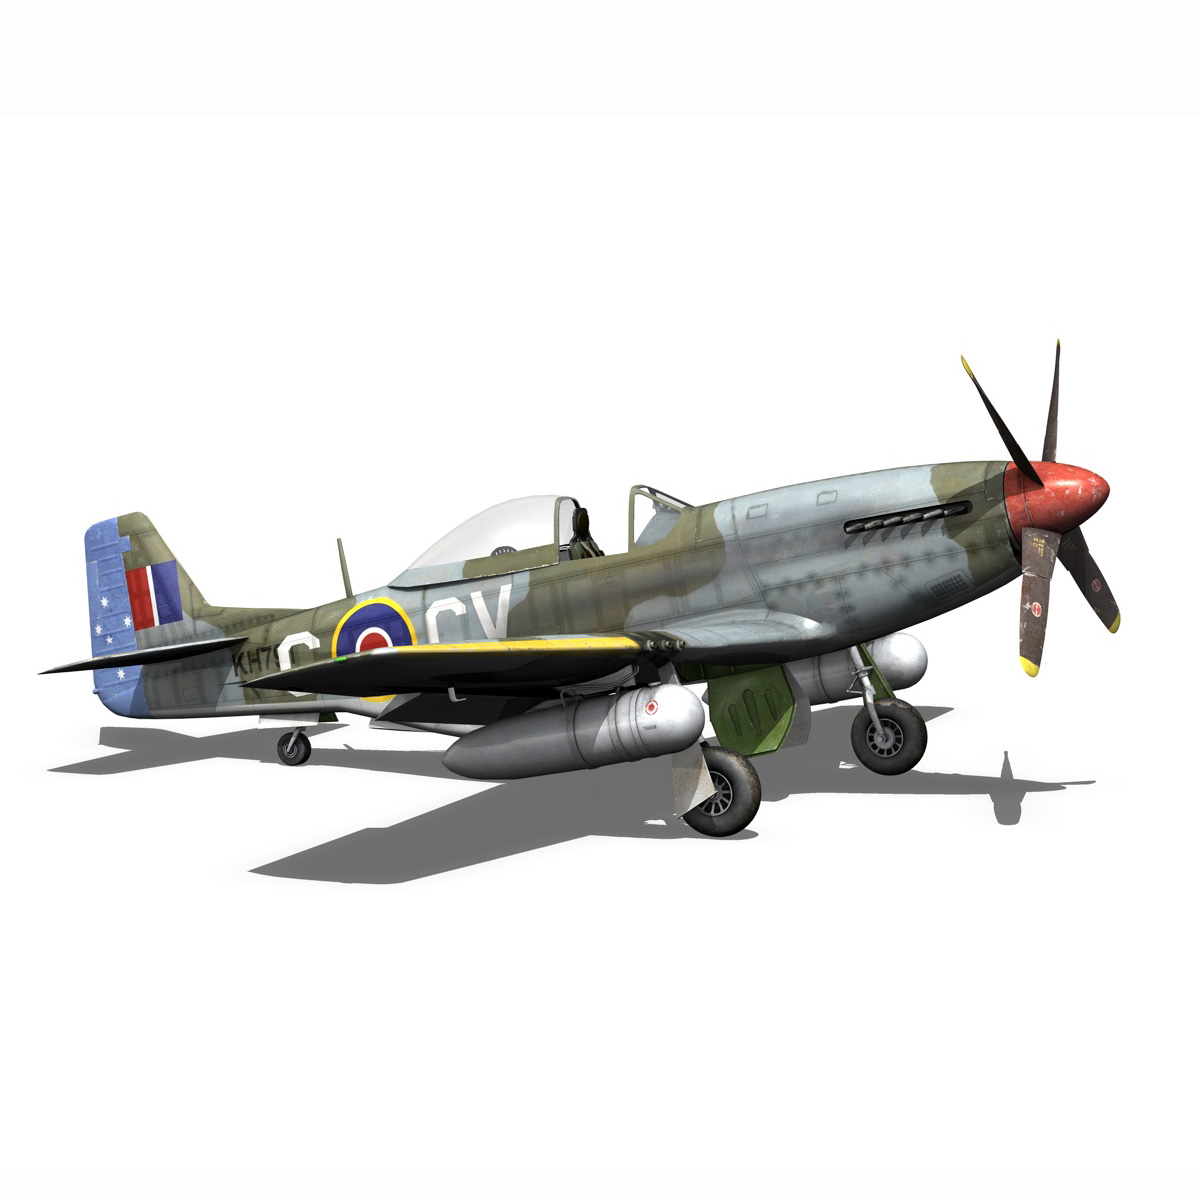 north american p-51d – cv-g 3d model 3ds fbx c4d lwo obj 188571